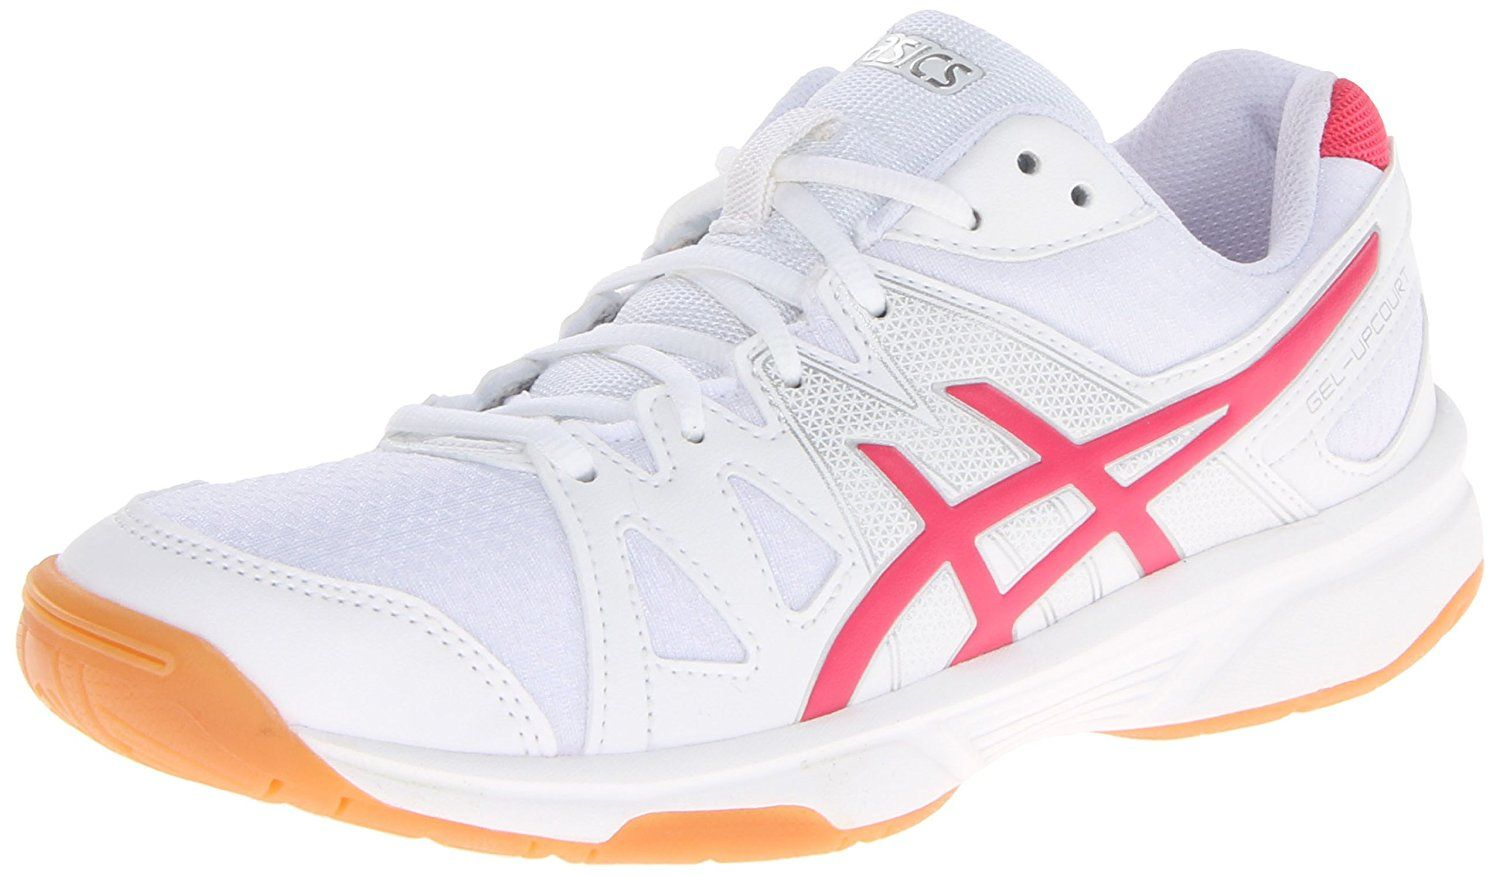 Asics Women S Gel Upcourt Volleyball Shoe Awesome Product Click The Image Running Shoes Asics Women Volleyball Shoes Womens Fashion Sneakers